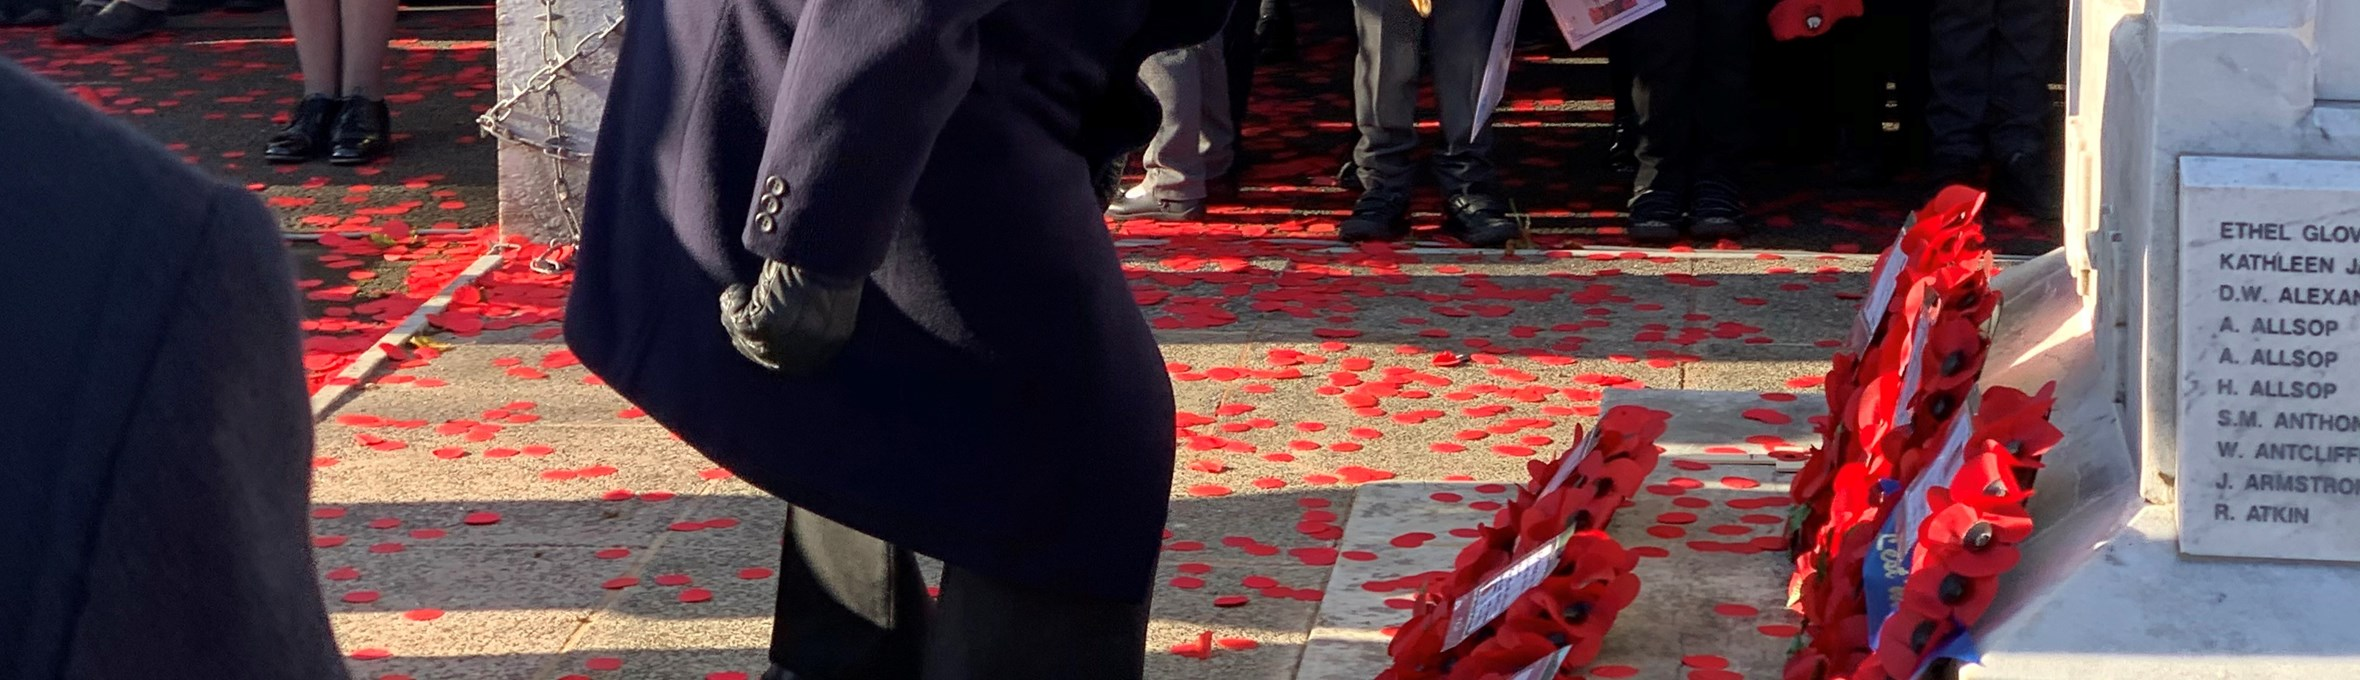 The late Cllr Anthony Brewer, Former ADC Chairman laying a wreath at last year's Remembrance Day.